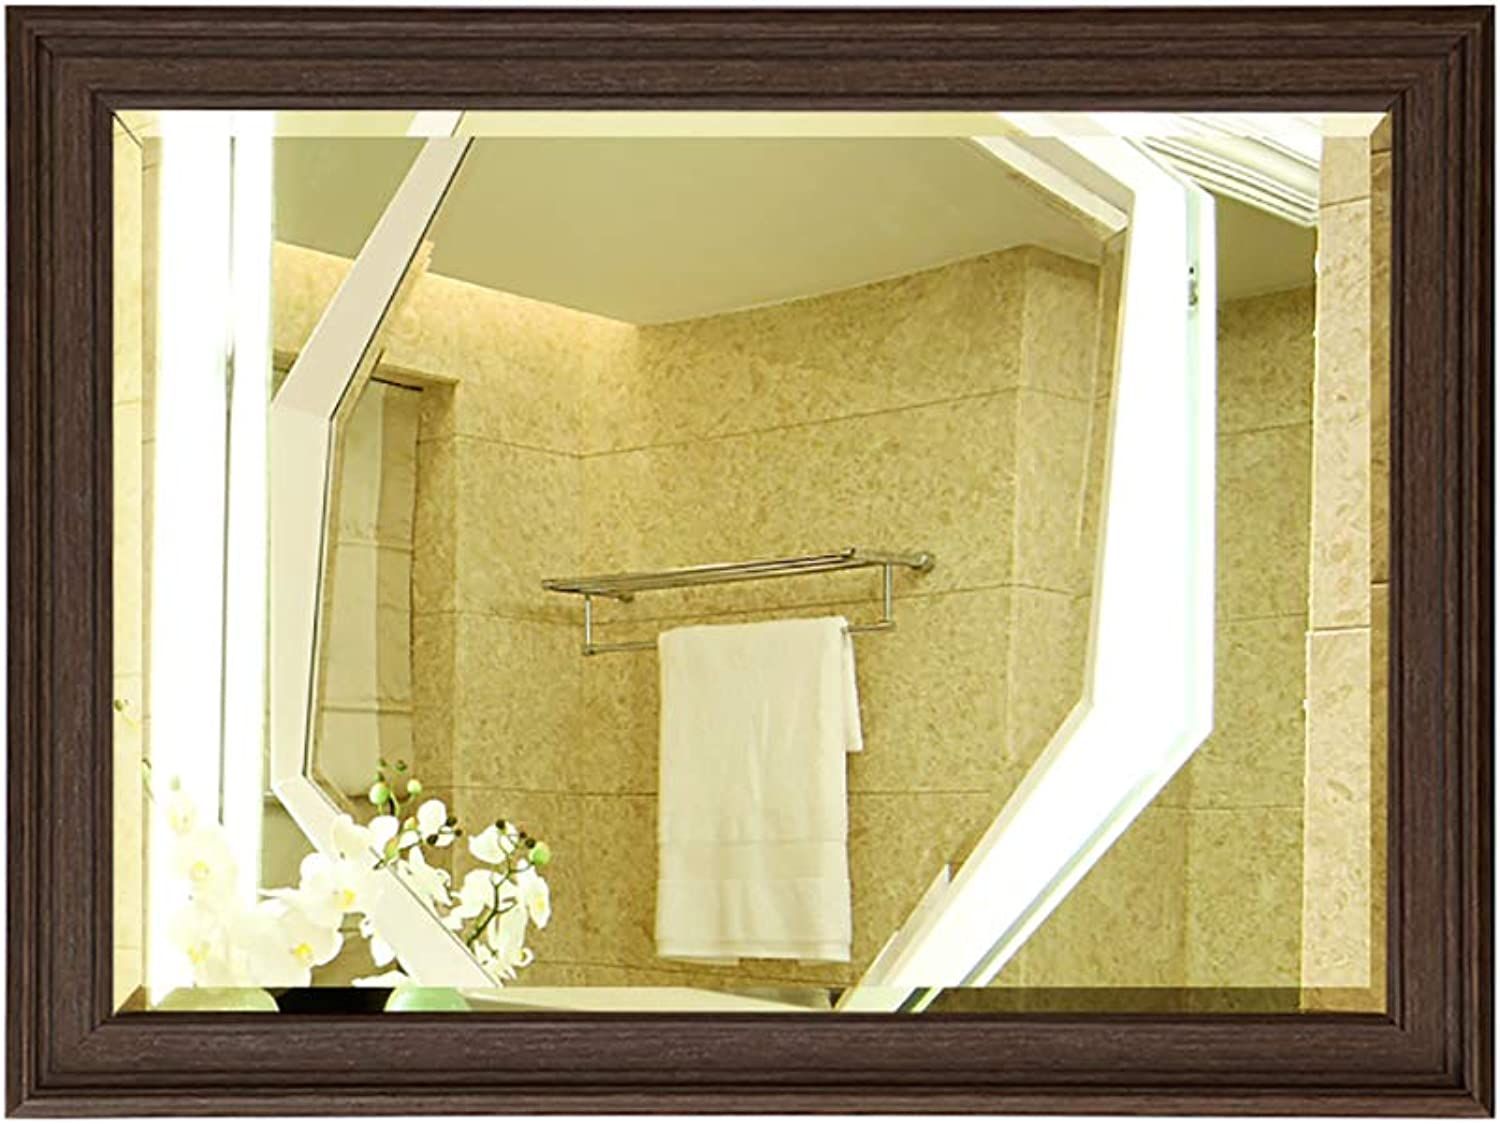 Bathroom Mirror Wall-Mounted European Retro Explosion-Proof Mirror Environmentally Friendly Resin Material Frame Used for Makeup, Bathroom Cabinets, Above The Sink